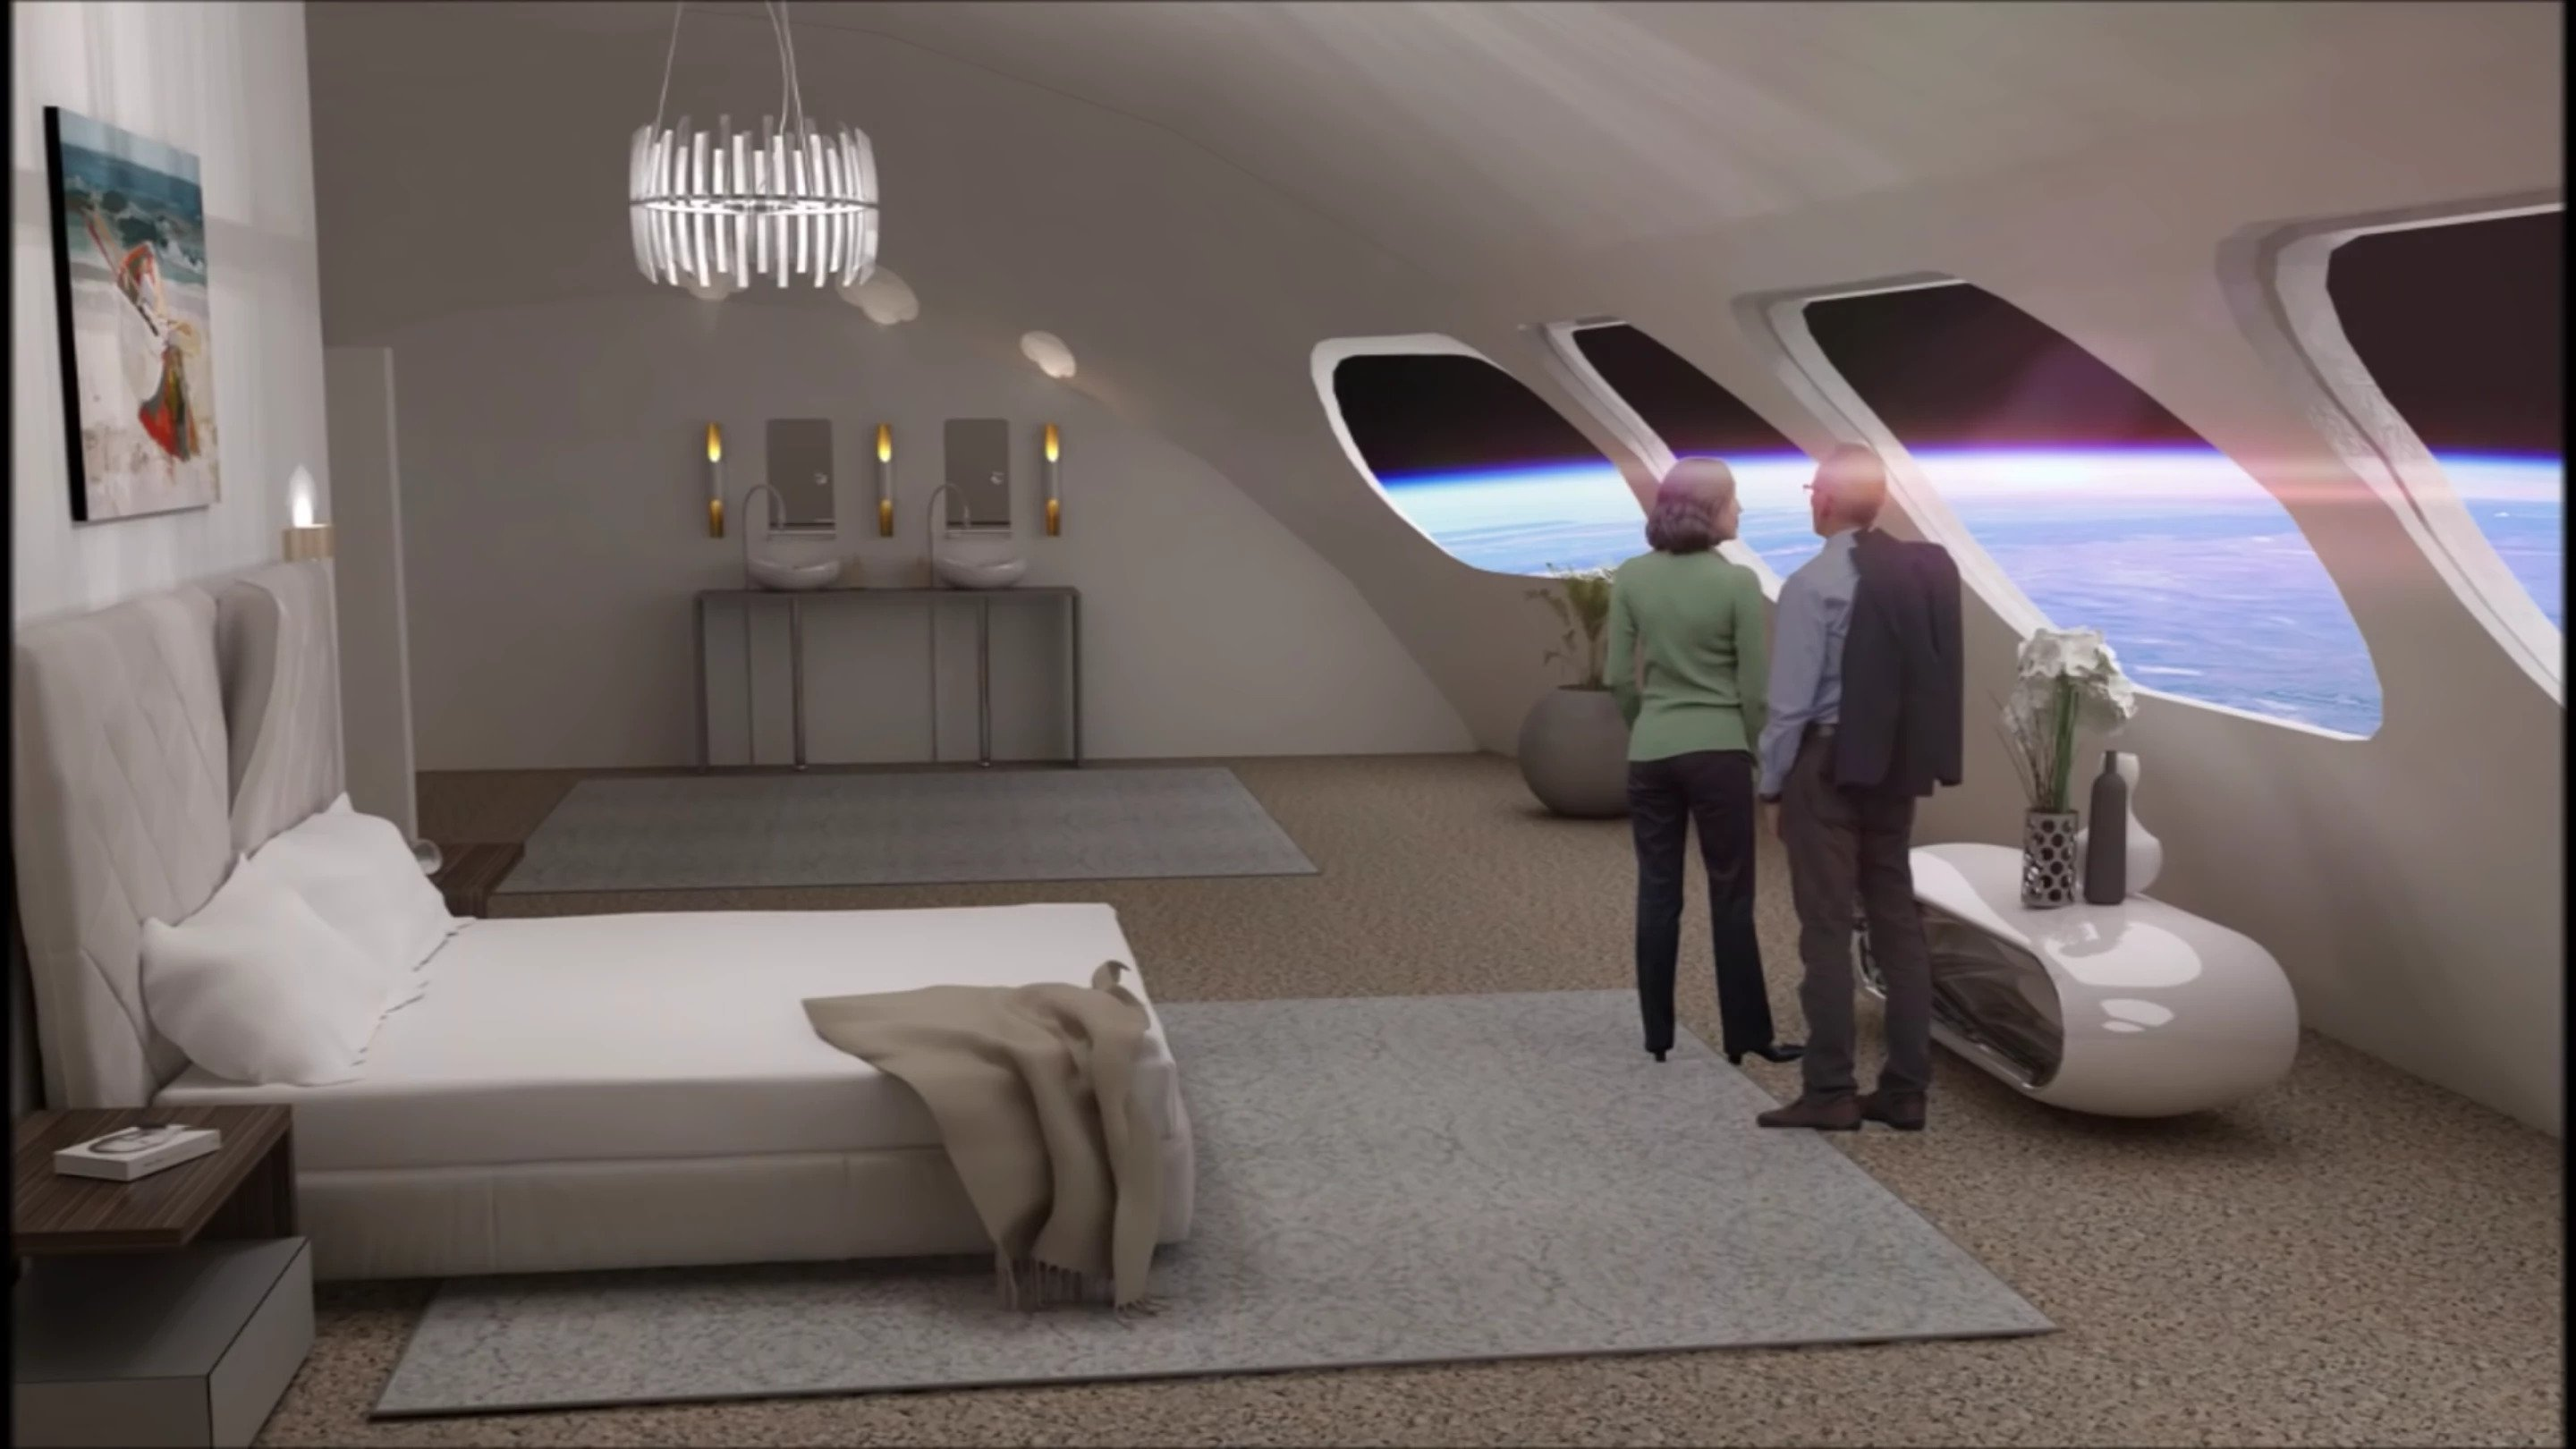 The World's First Space Hotel Hopes To Welcome Visitors in 2027